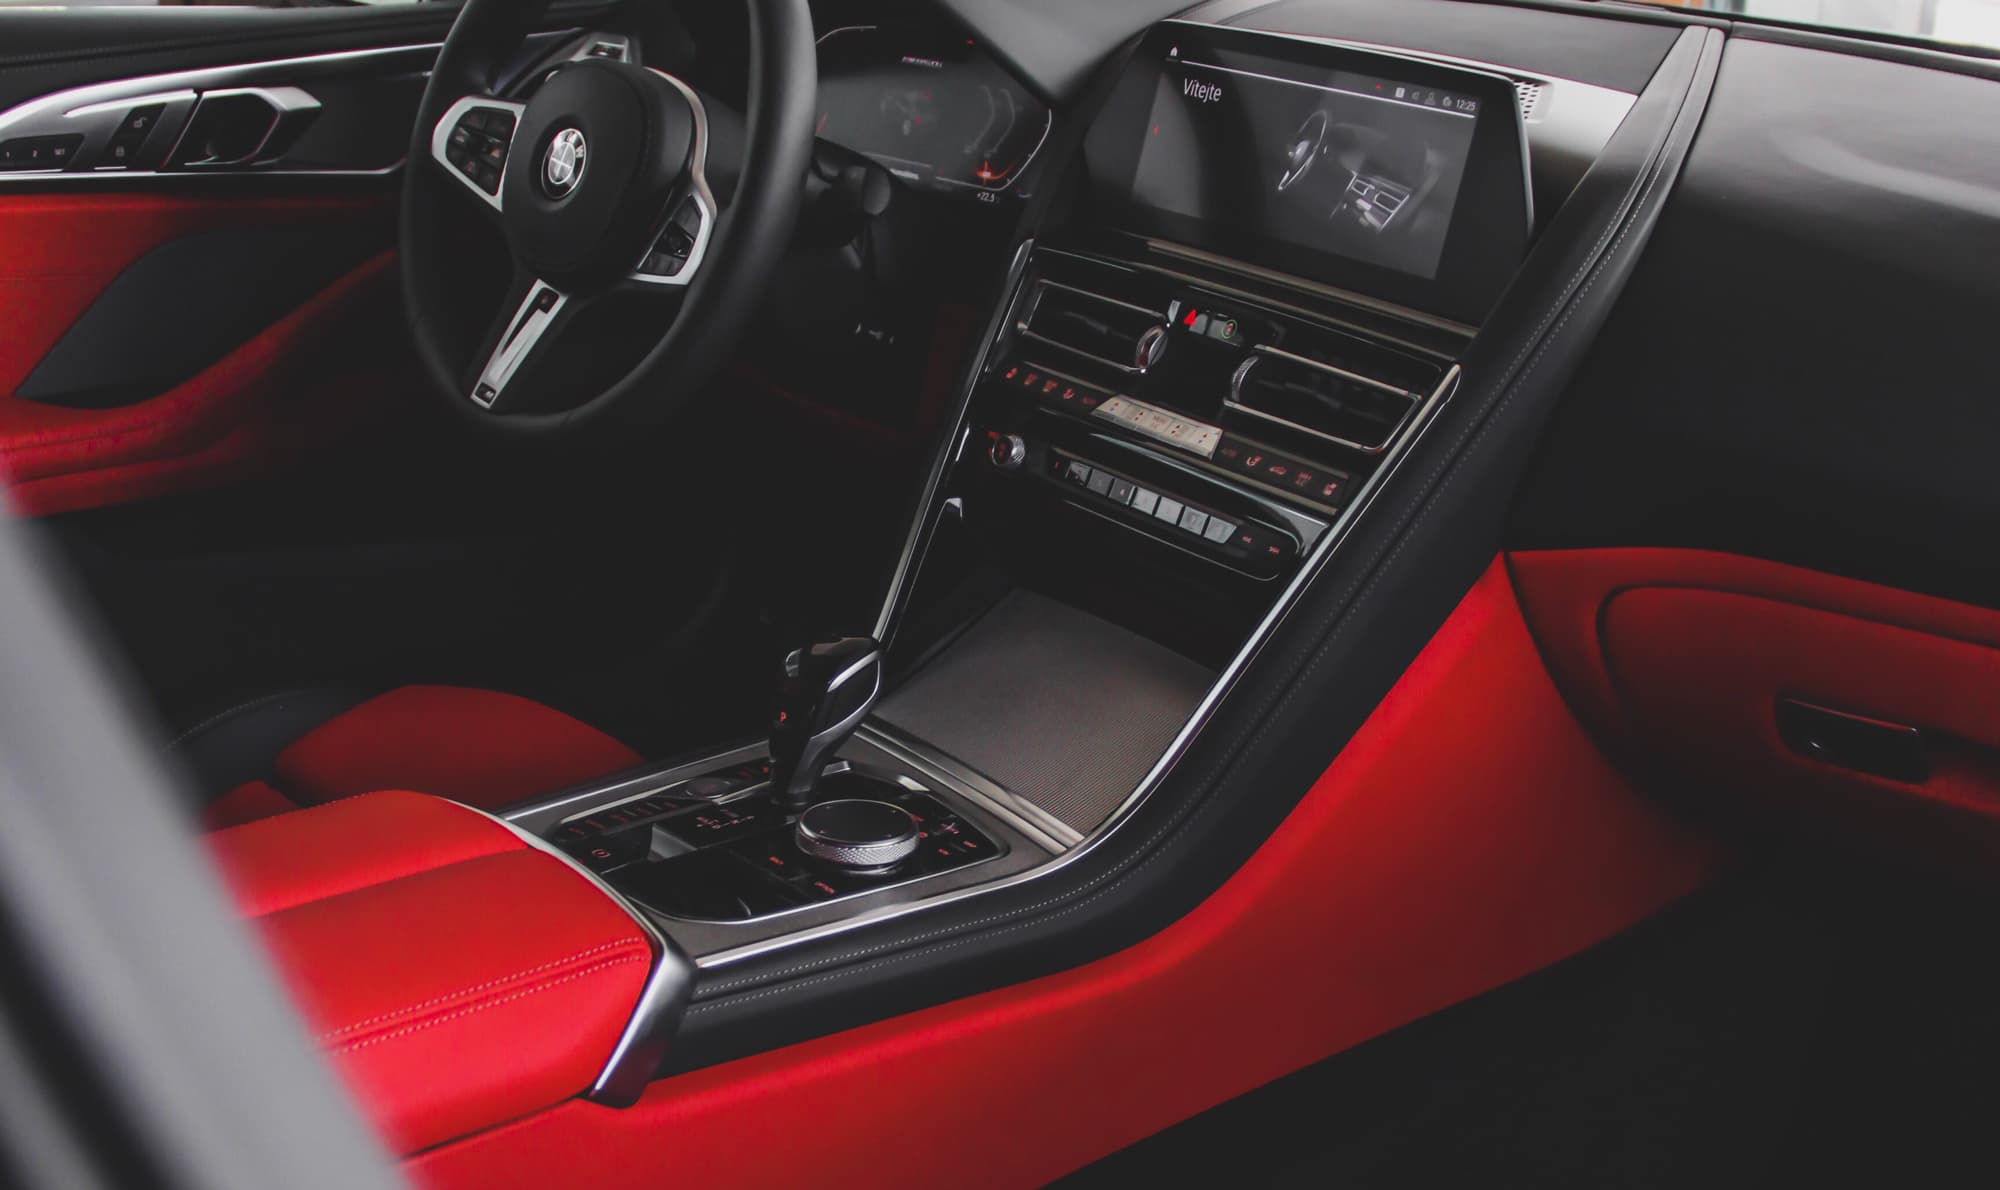 Metcha takes a fresh look at car interiors